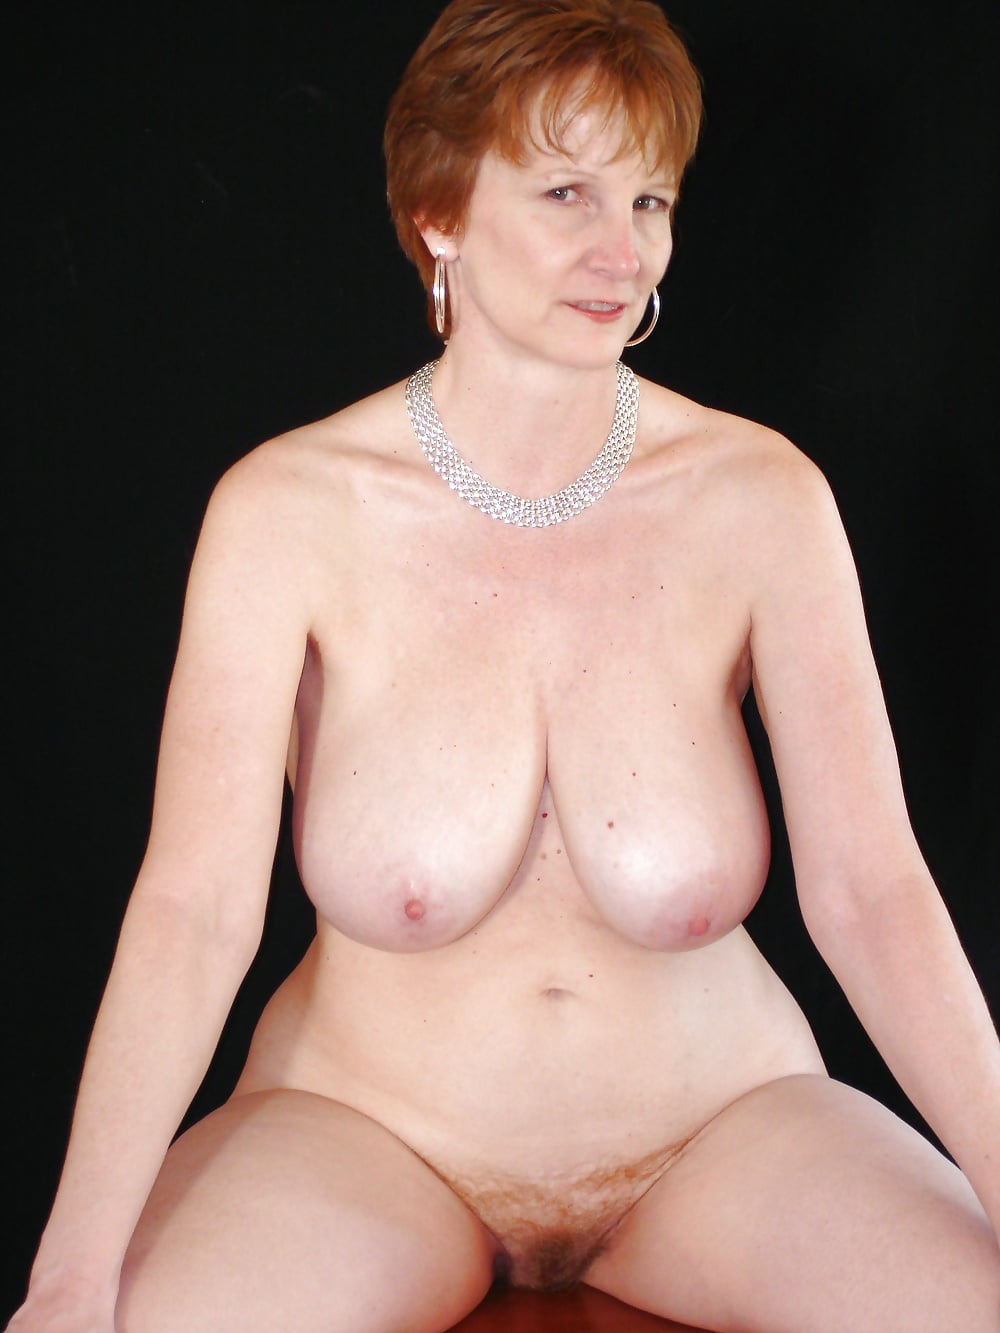 amature-women-stripper-free-hardcore-chubby-woman-movies